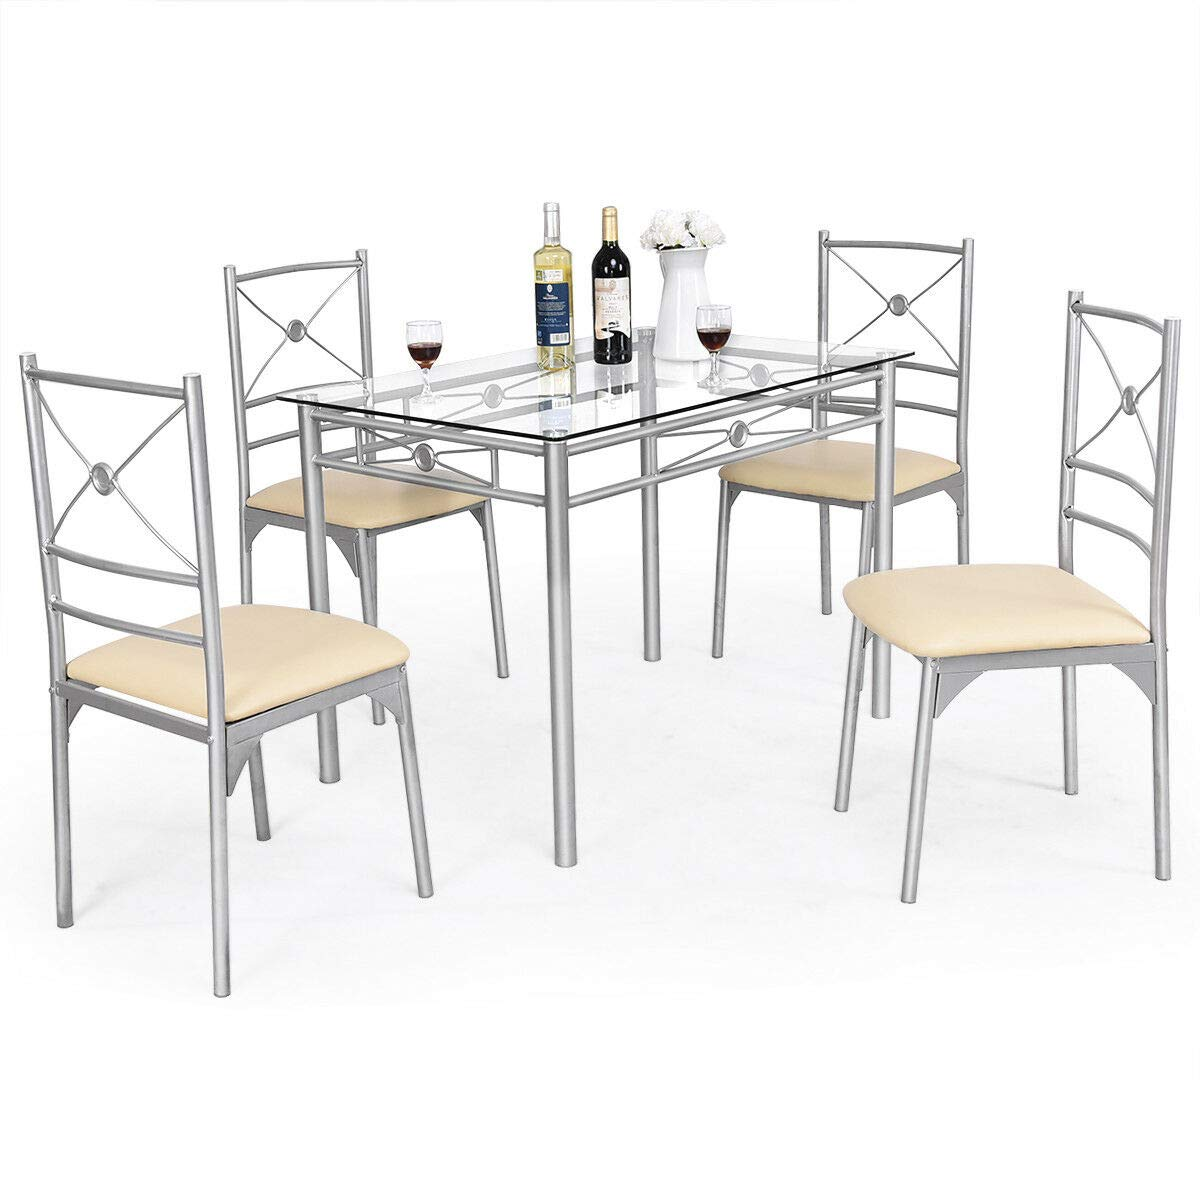 Tangkula Dining Table Set 5 Piece Home Kitchen Dining Room Tempered Glass Top Table and Chairs Breaksfast Furniture (Silver 001) by Tangkula